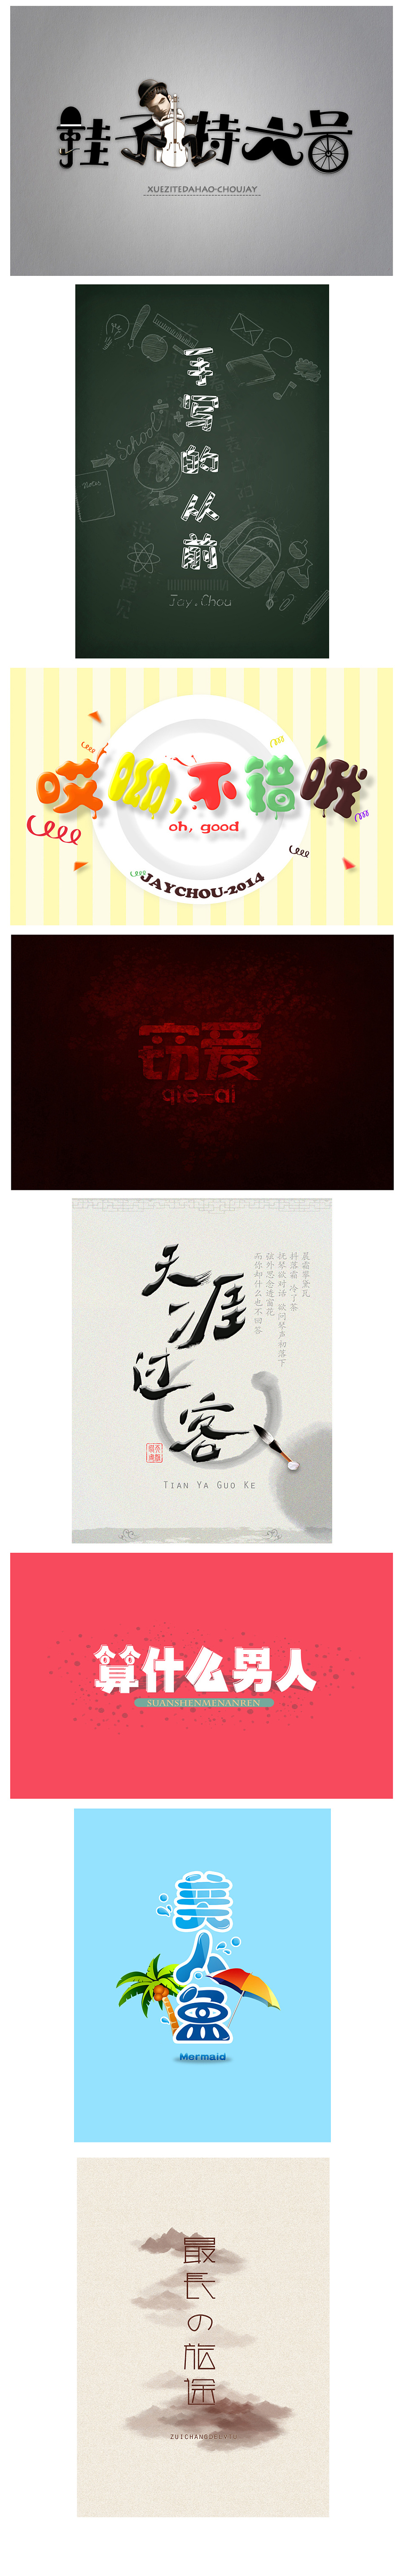 chinesefontdesign.com 2016 11 18 20 44 31 100+ Wonderful idea of the Chinese font logo design #.80